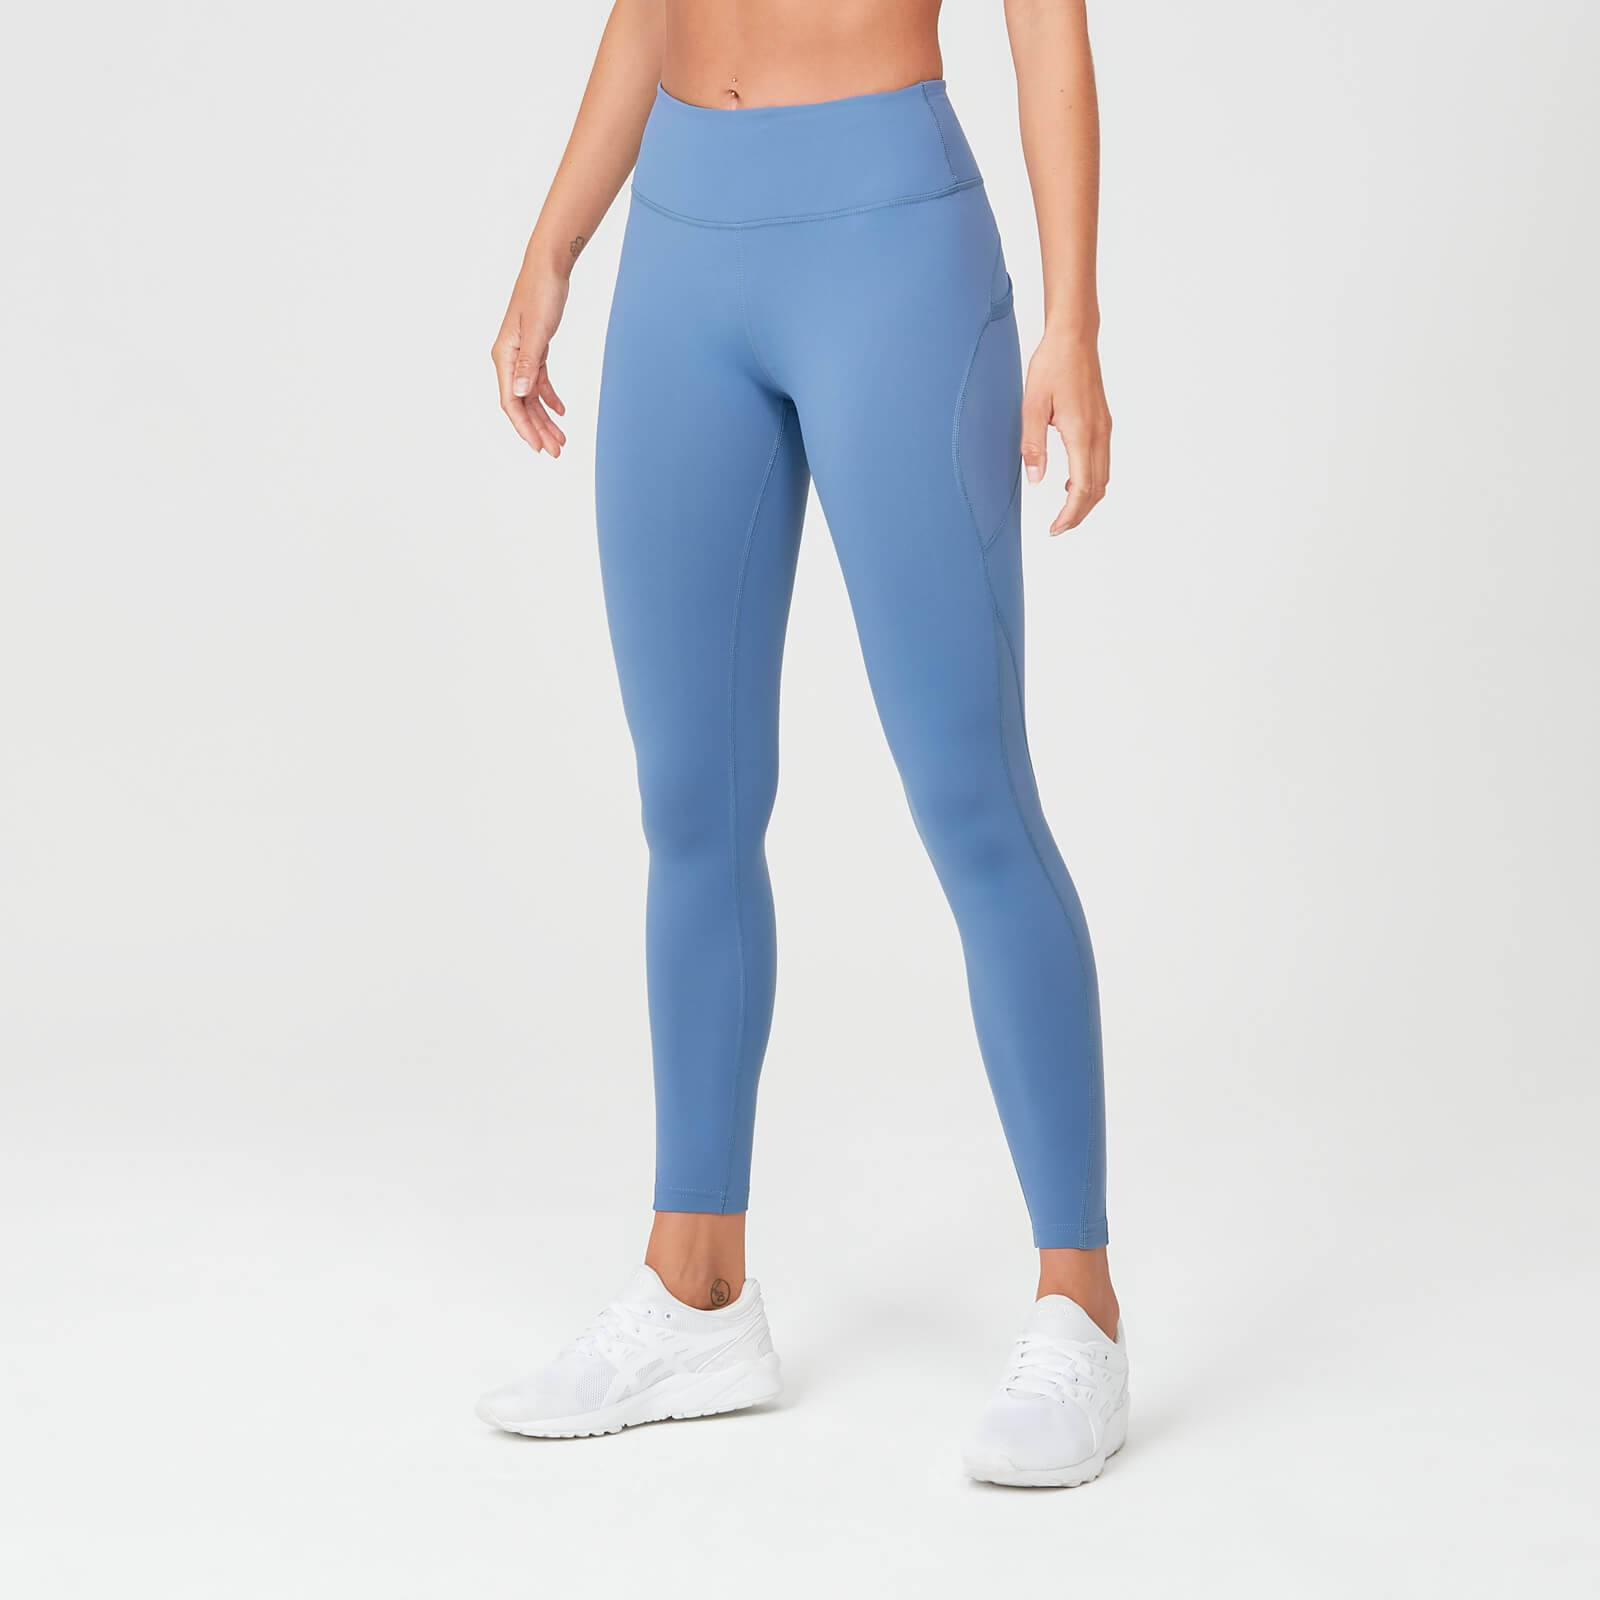 Myprotein Leggings Power Mesh - Blu lampo - S - Thunder Blue